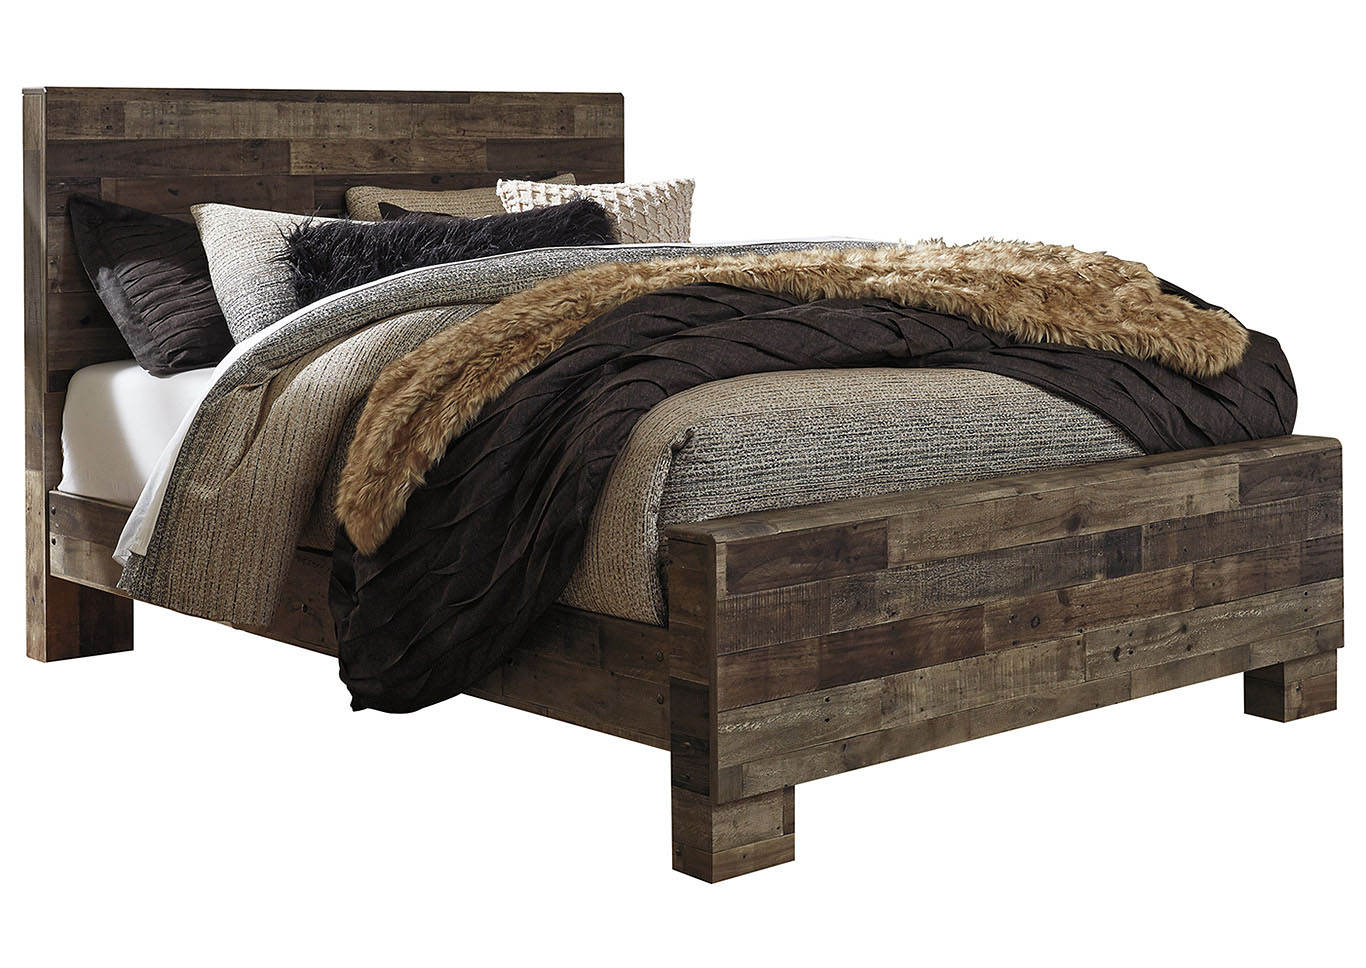 Derekson Multi Gray Queen Panel Bed,Signature Design By Ashley